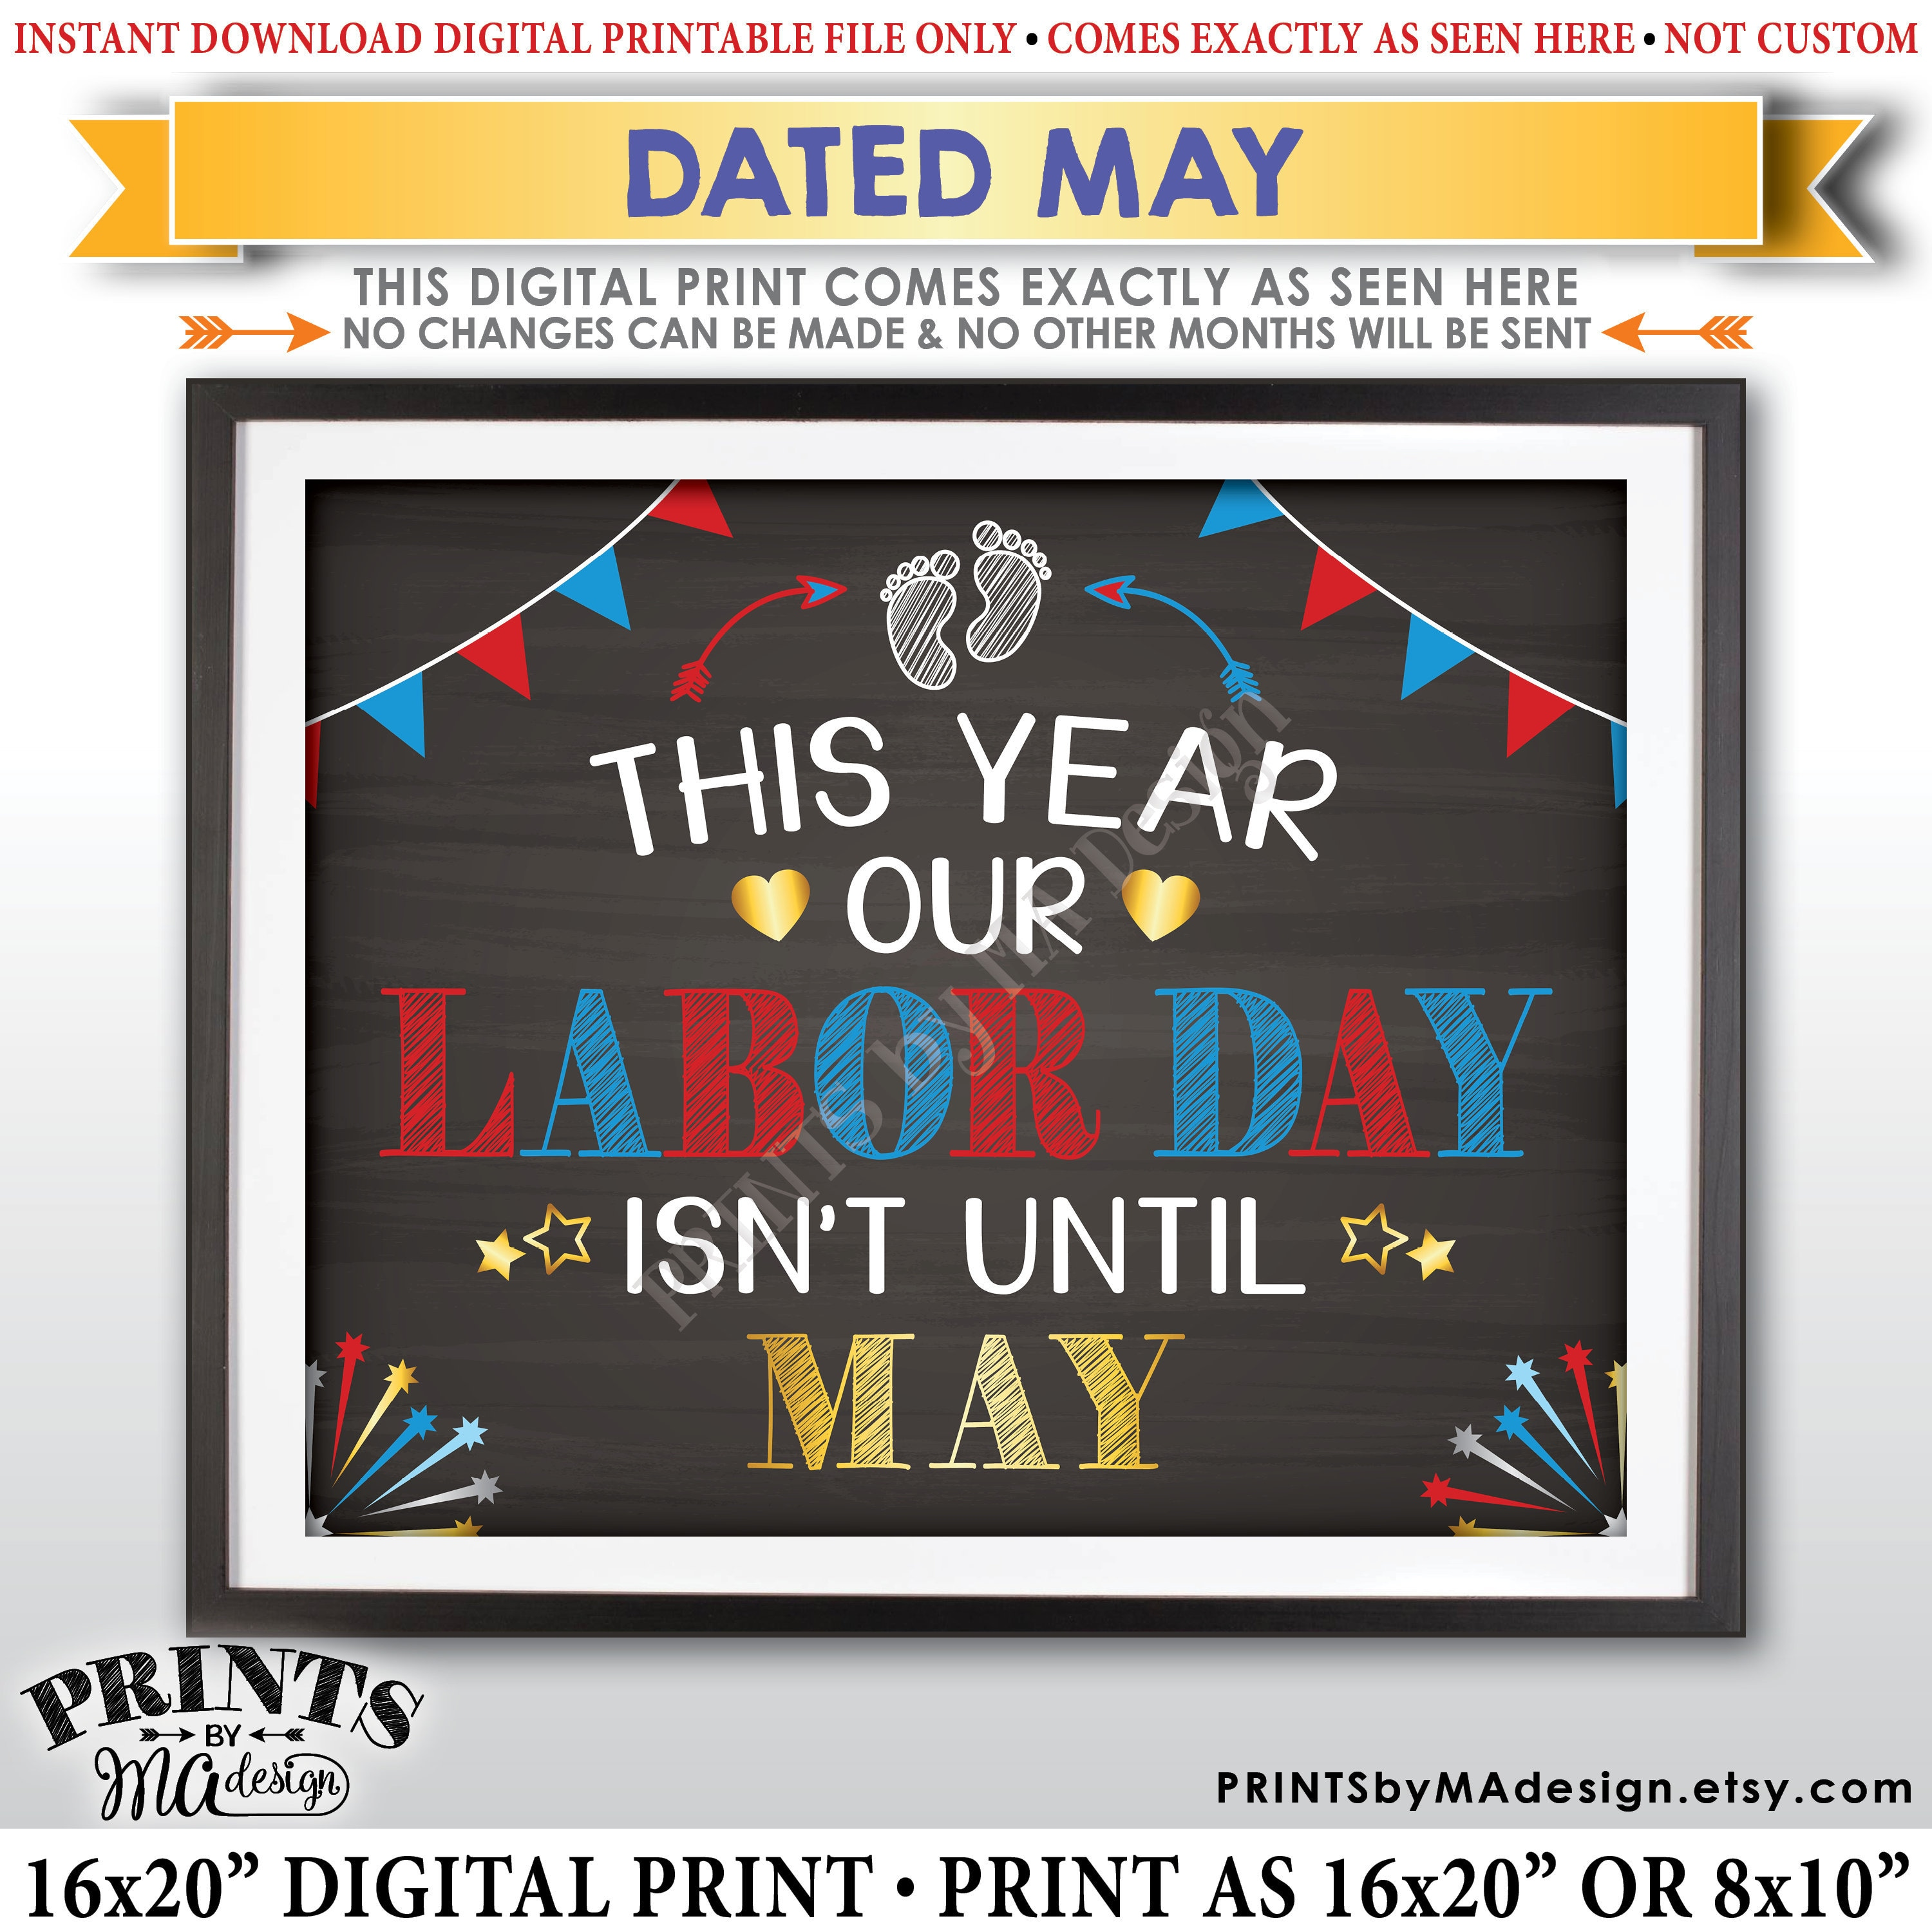 graphic about Closed for Labor Day Printable Sign named Labor Working day Being pregnant Announcement Indication, This 12 months Our